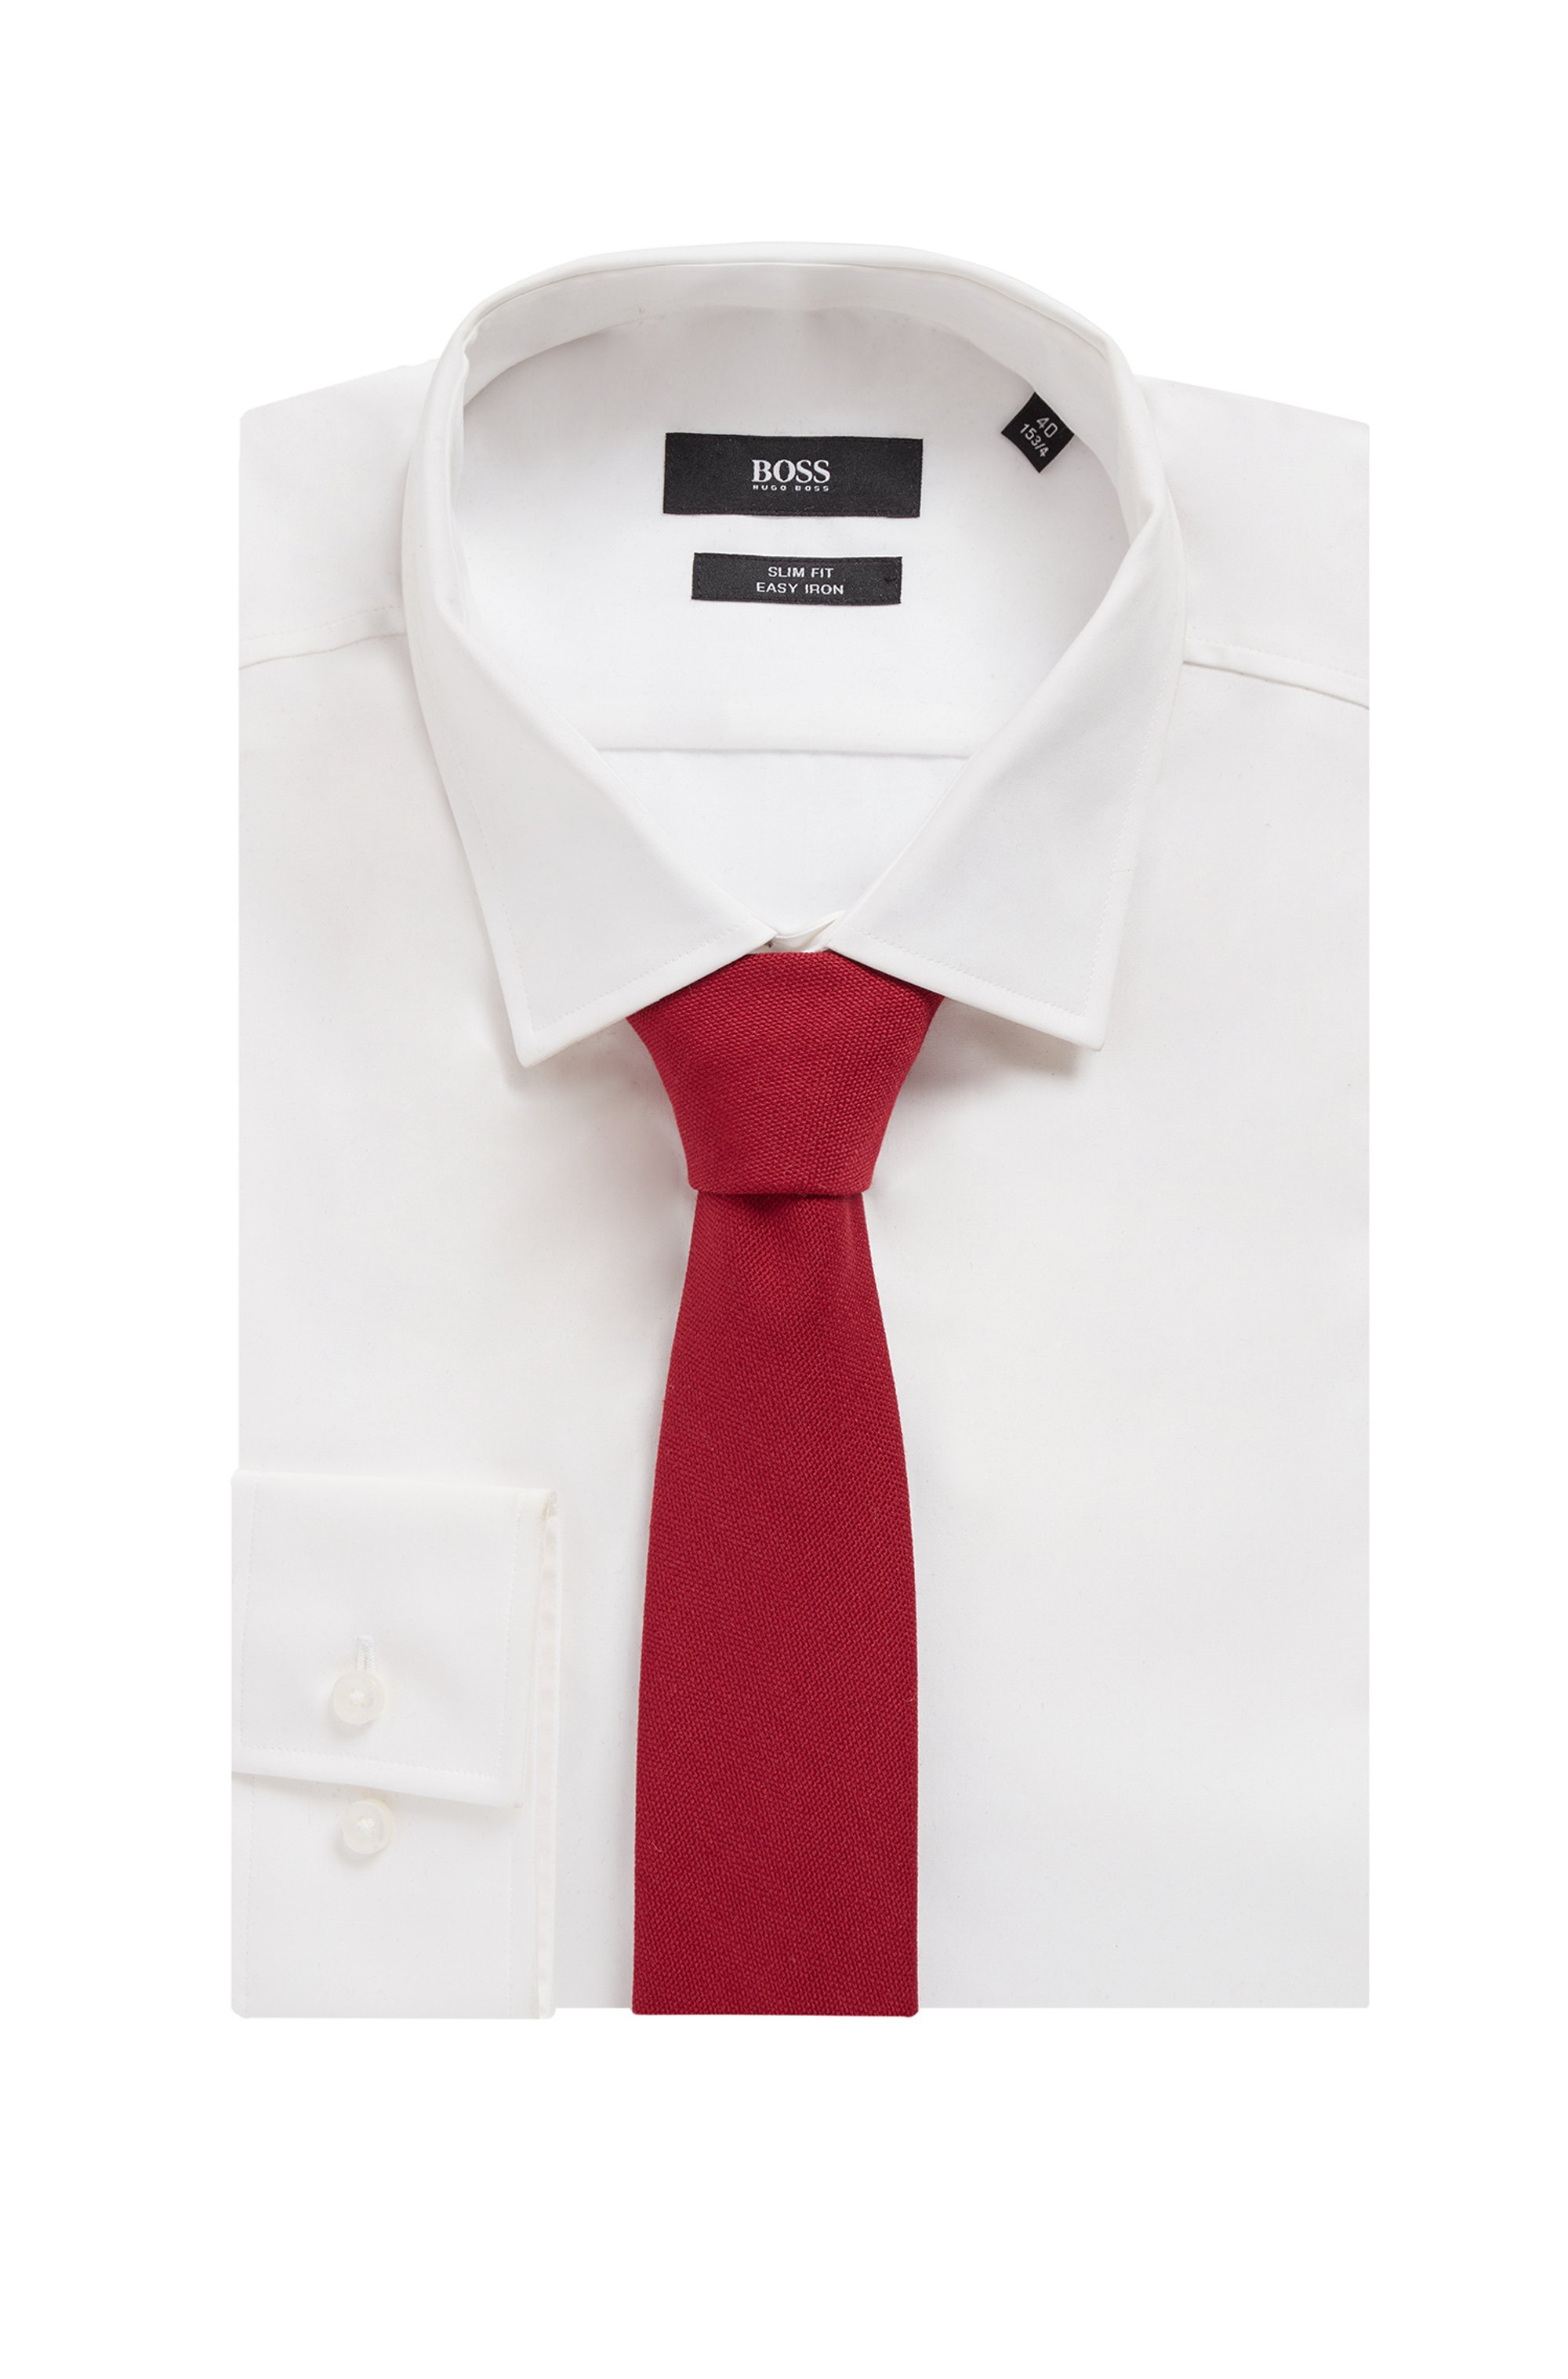 Italian-made tie in midweight fabric